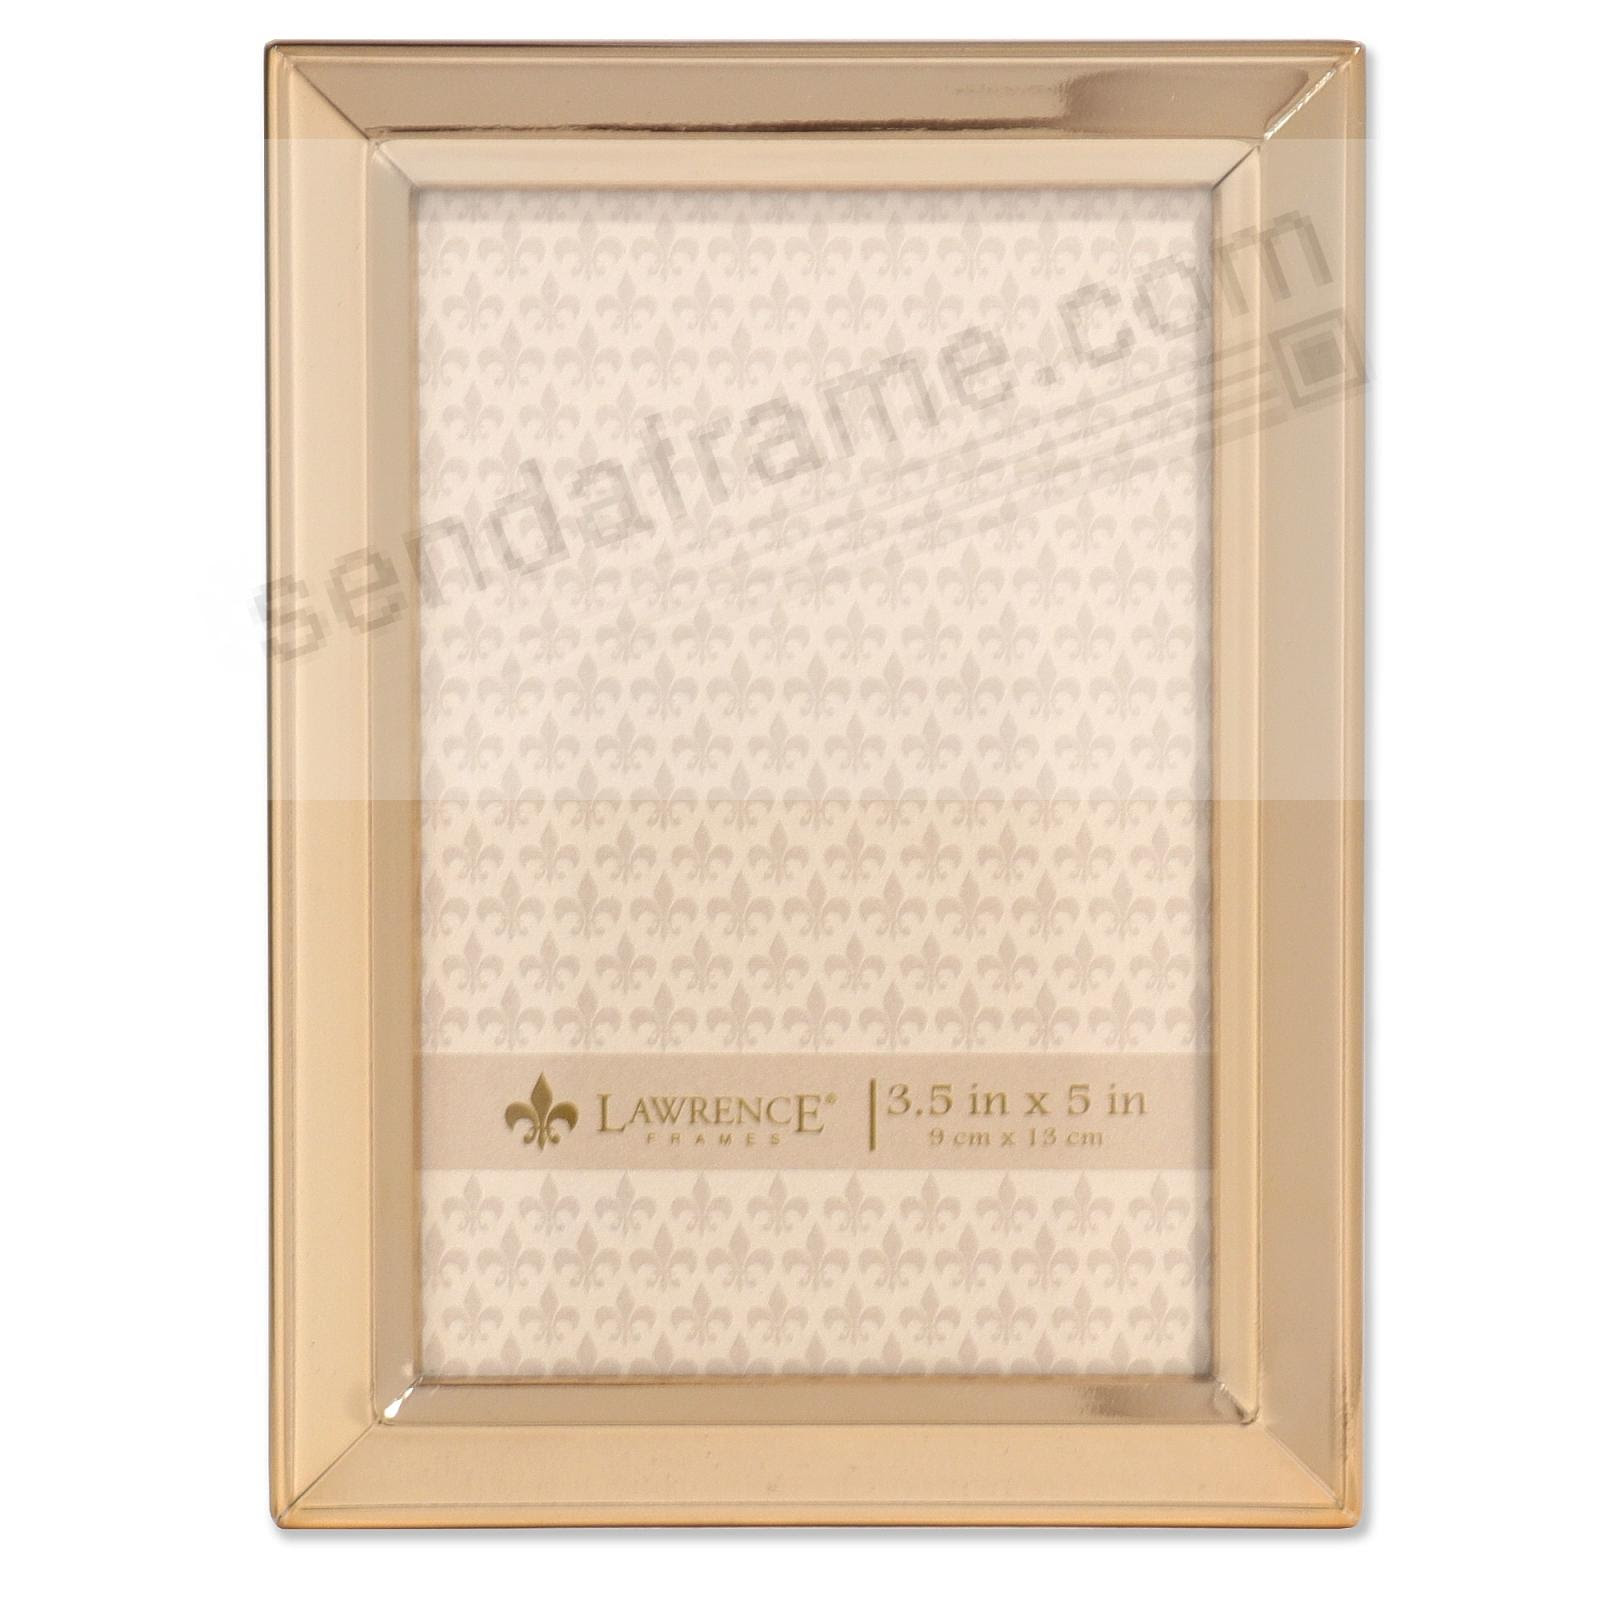 Bevelled Border Gold Finish 3x5 Frame By Lawrence Picture Frames